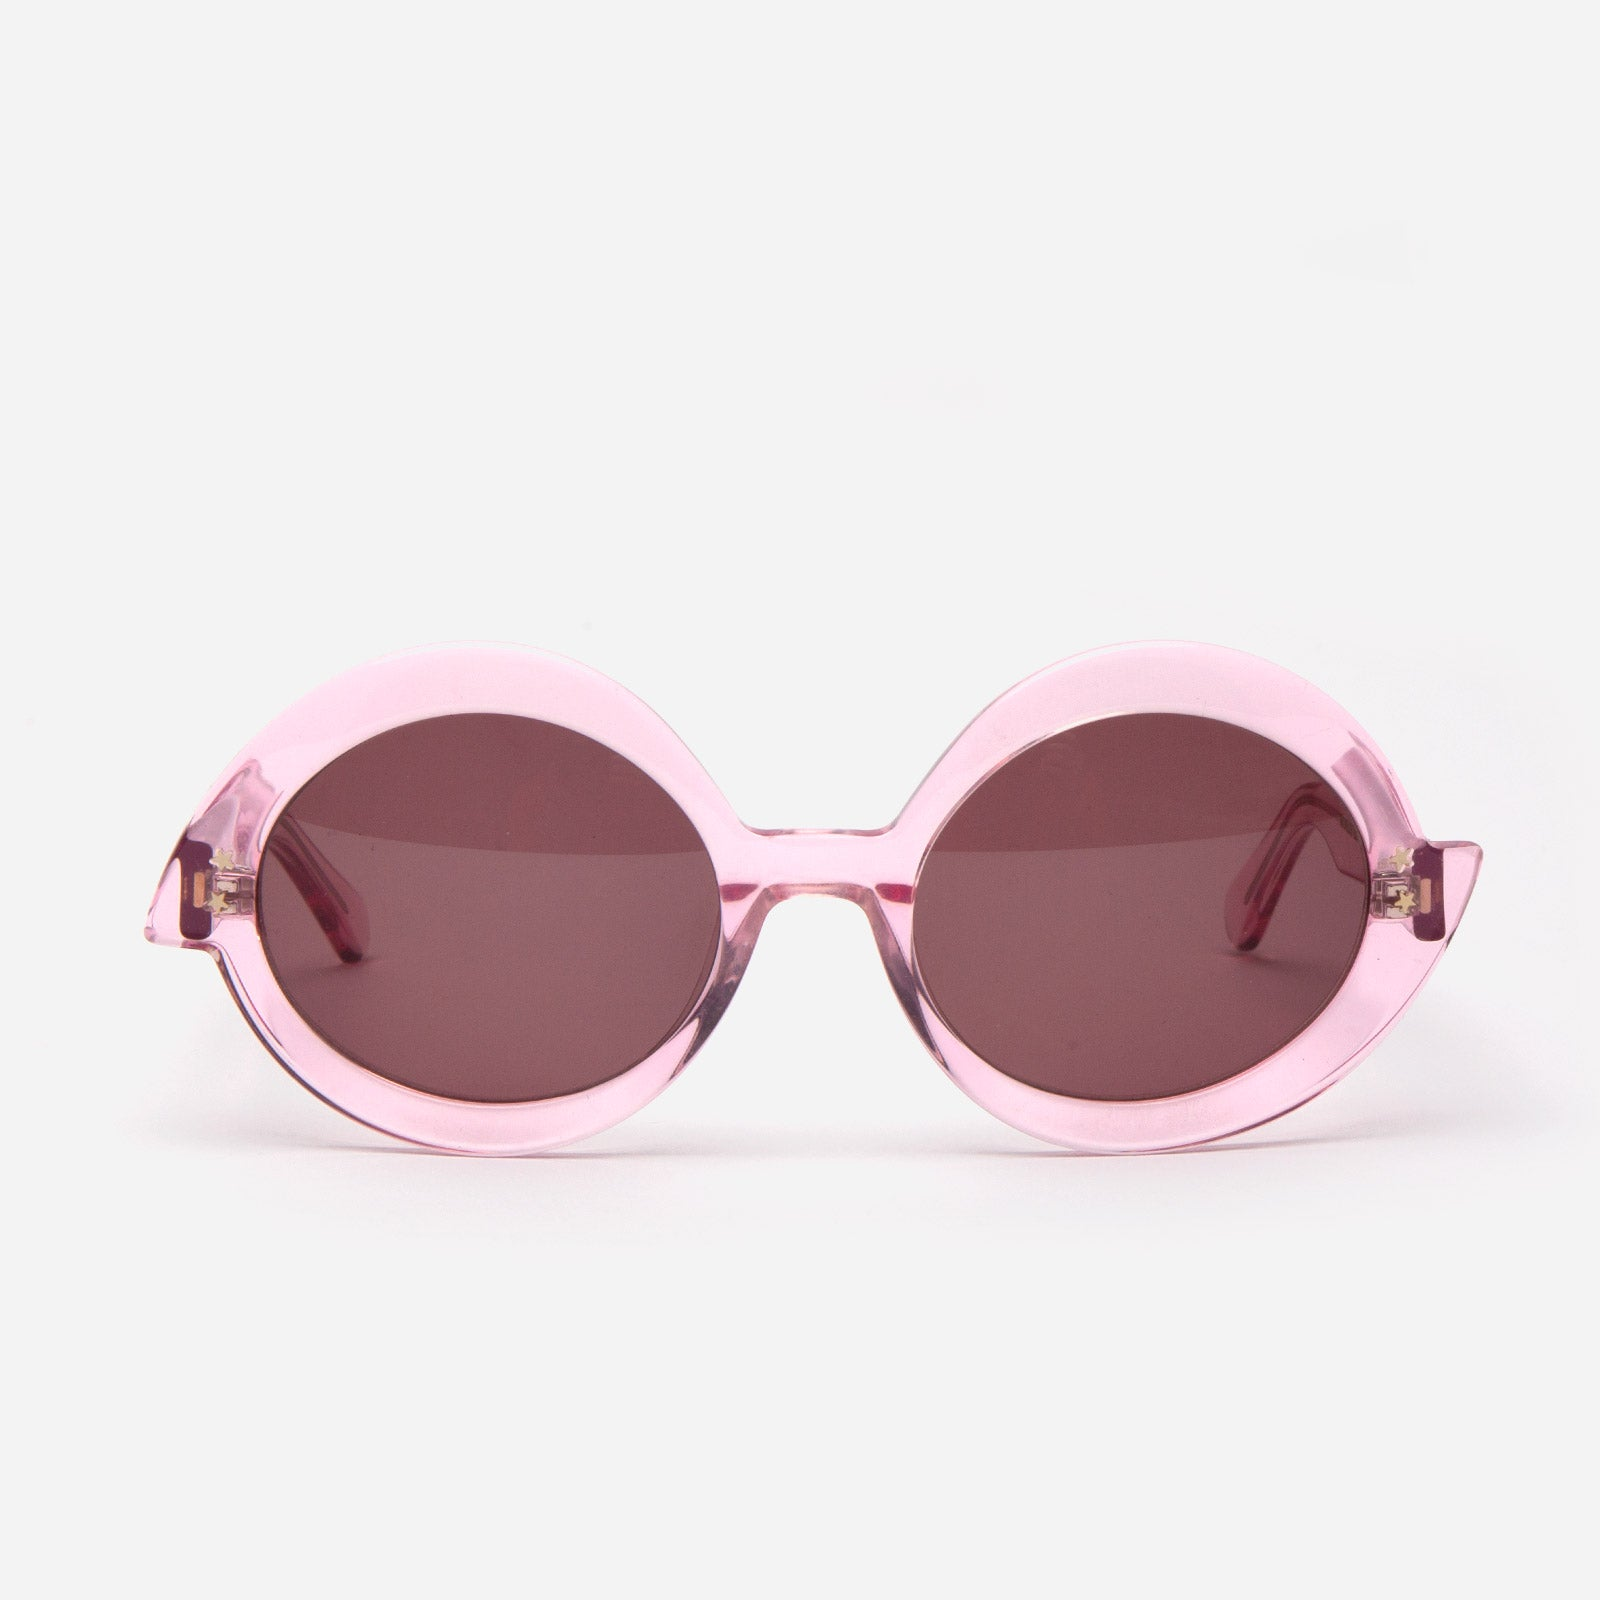 Michelle Sunglasses Pink - Frances Valentine